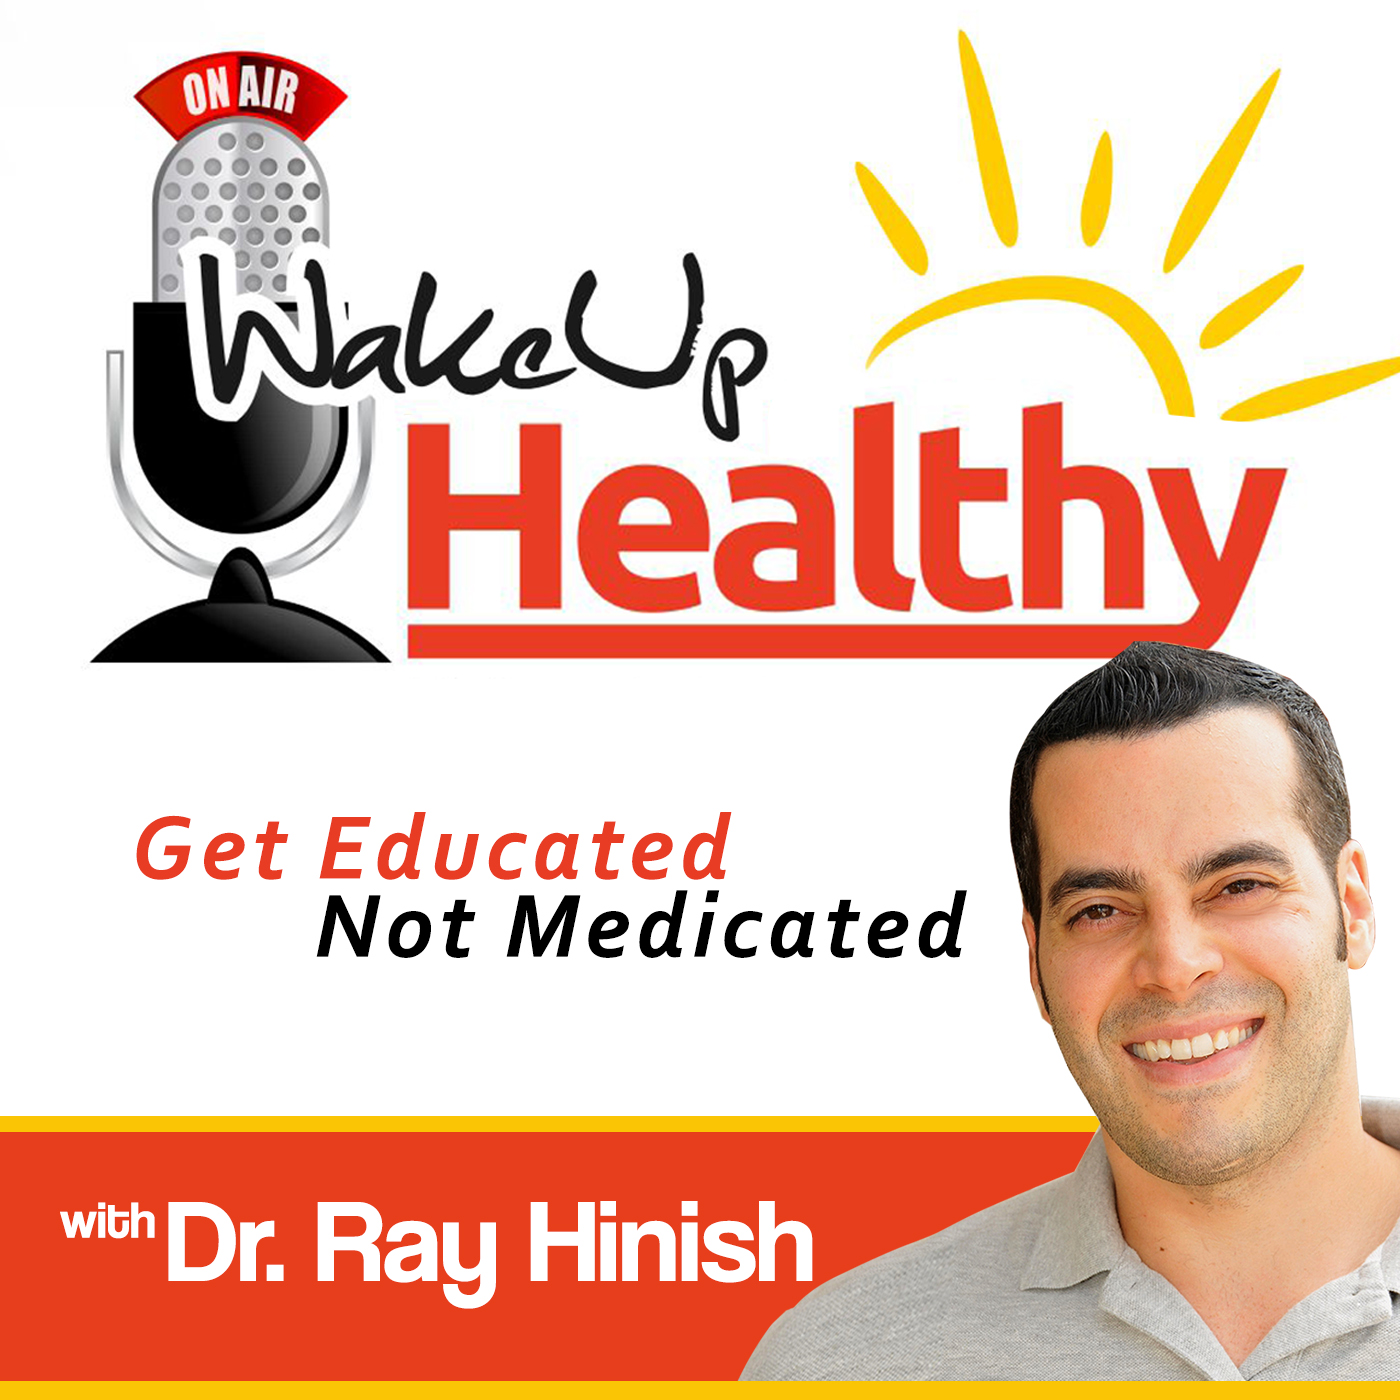 Wake Up Healthy Health Podcast | Wellness Podcasts | Nutrition Podcast | Alternative Medicine | Natural Health | Holistic Medicine